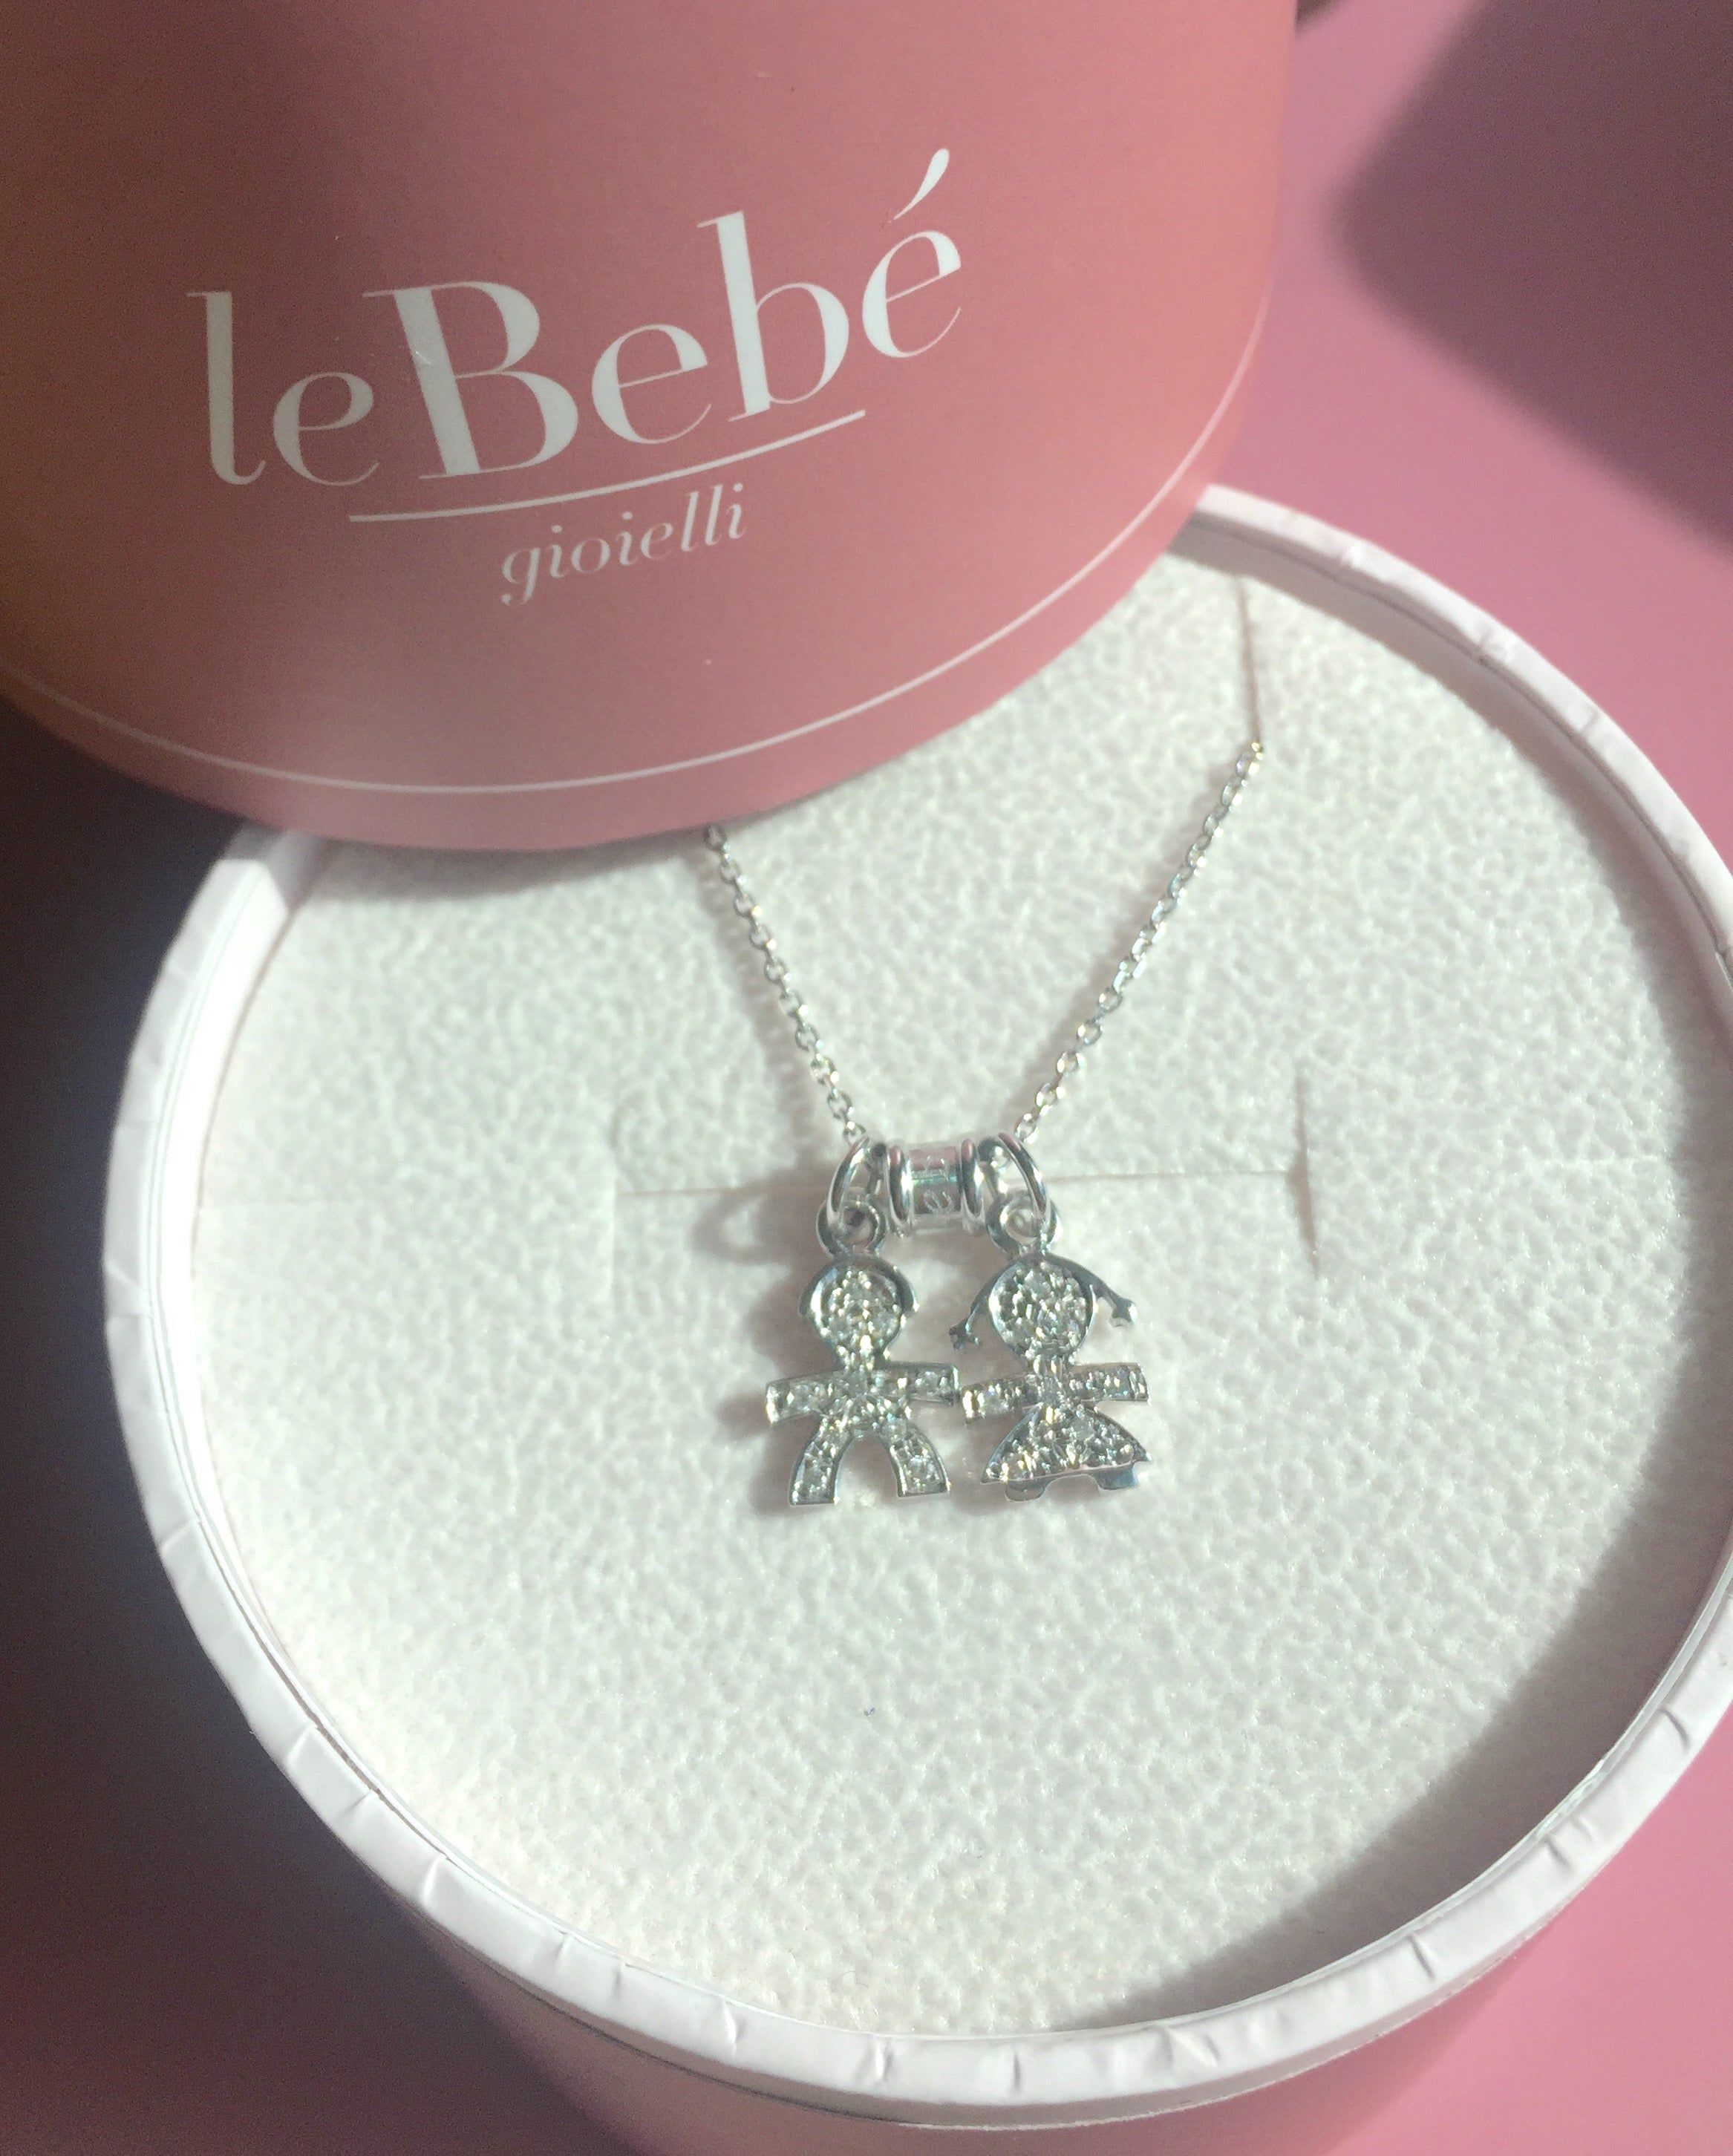 For mom of 2 diamond pave necklace with white gold boy girl on for mom of 2 diamond pave necklace with white gold boy girl on white aloadofball Choice Image